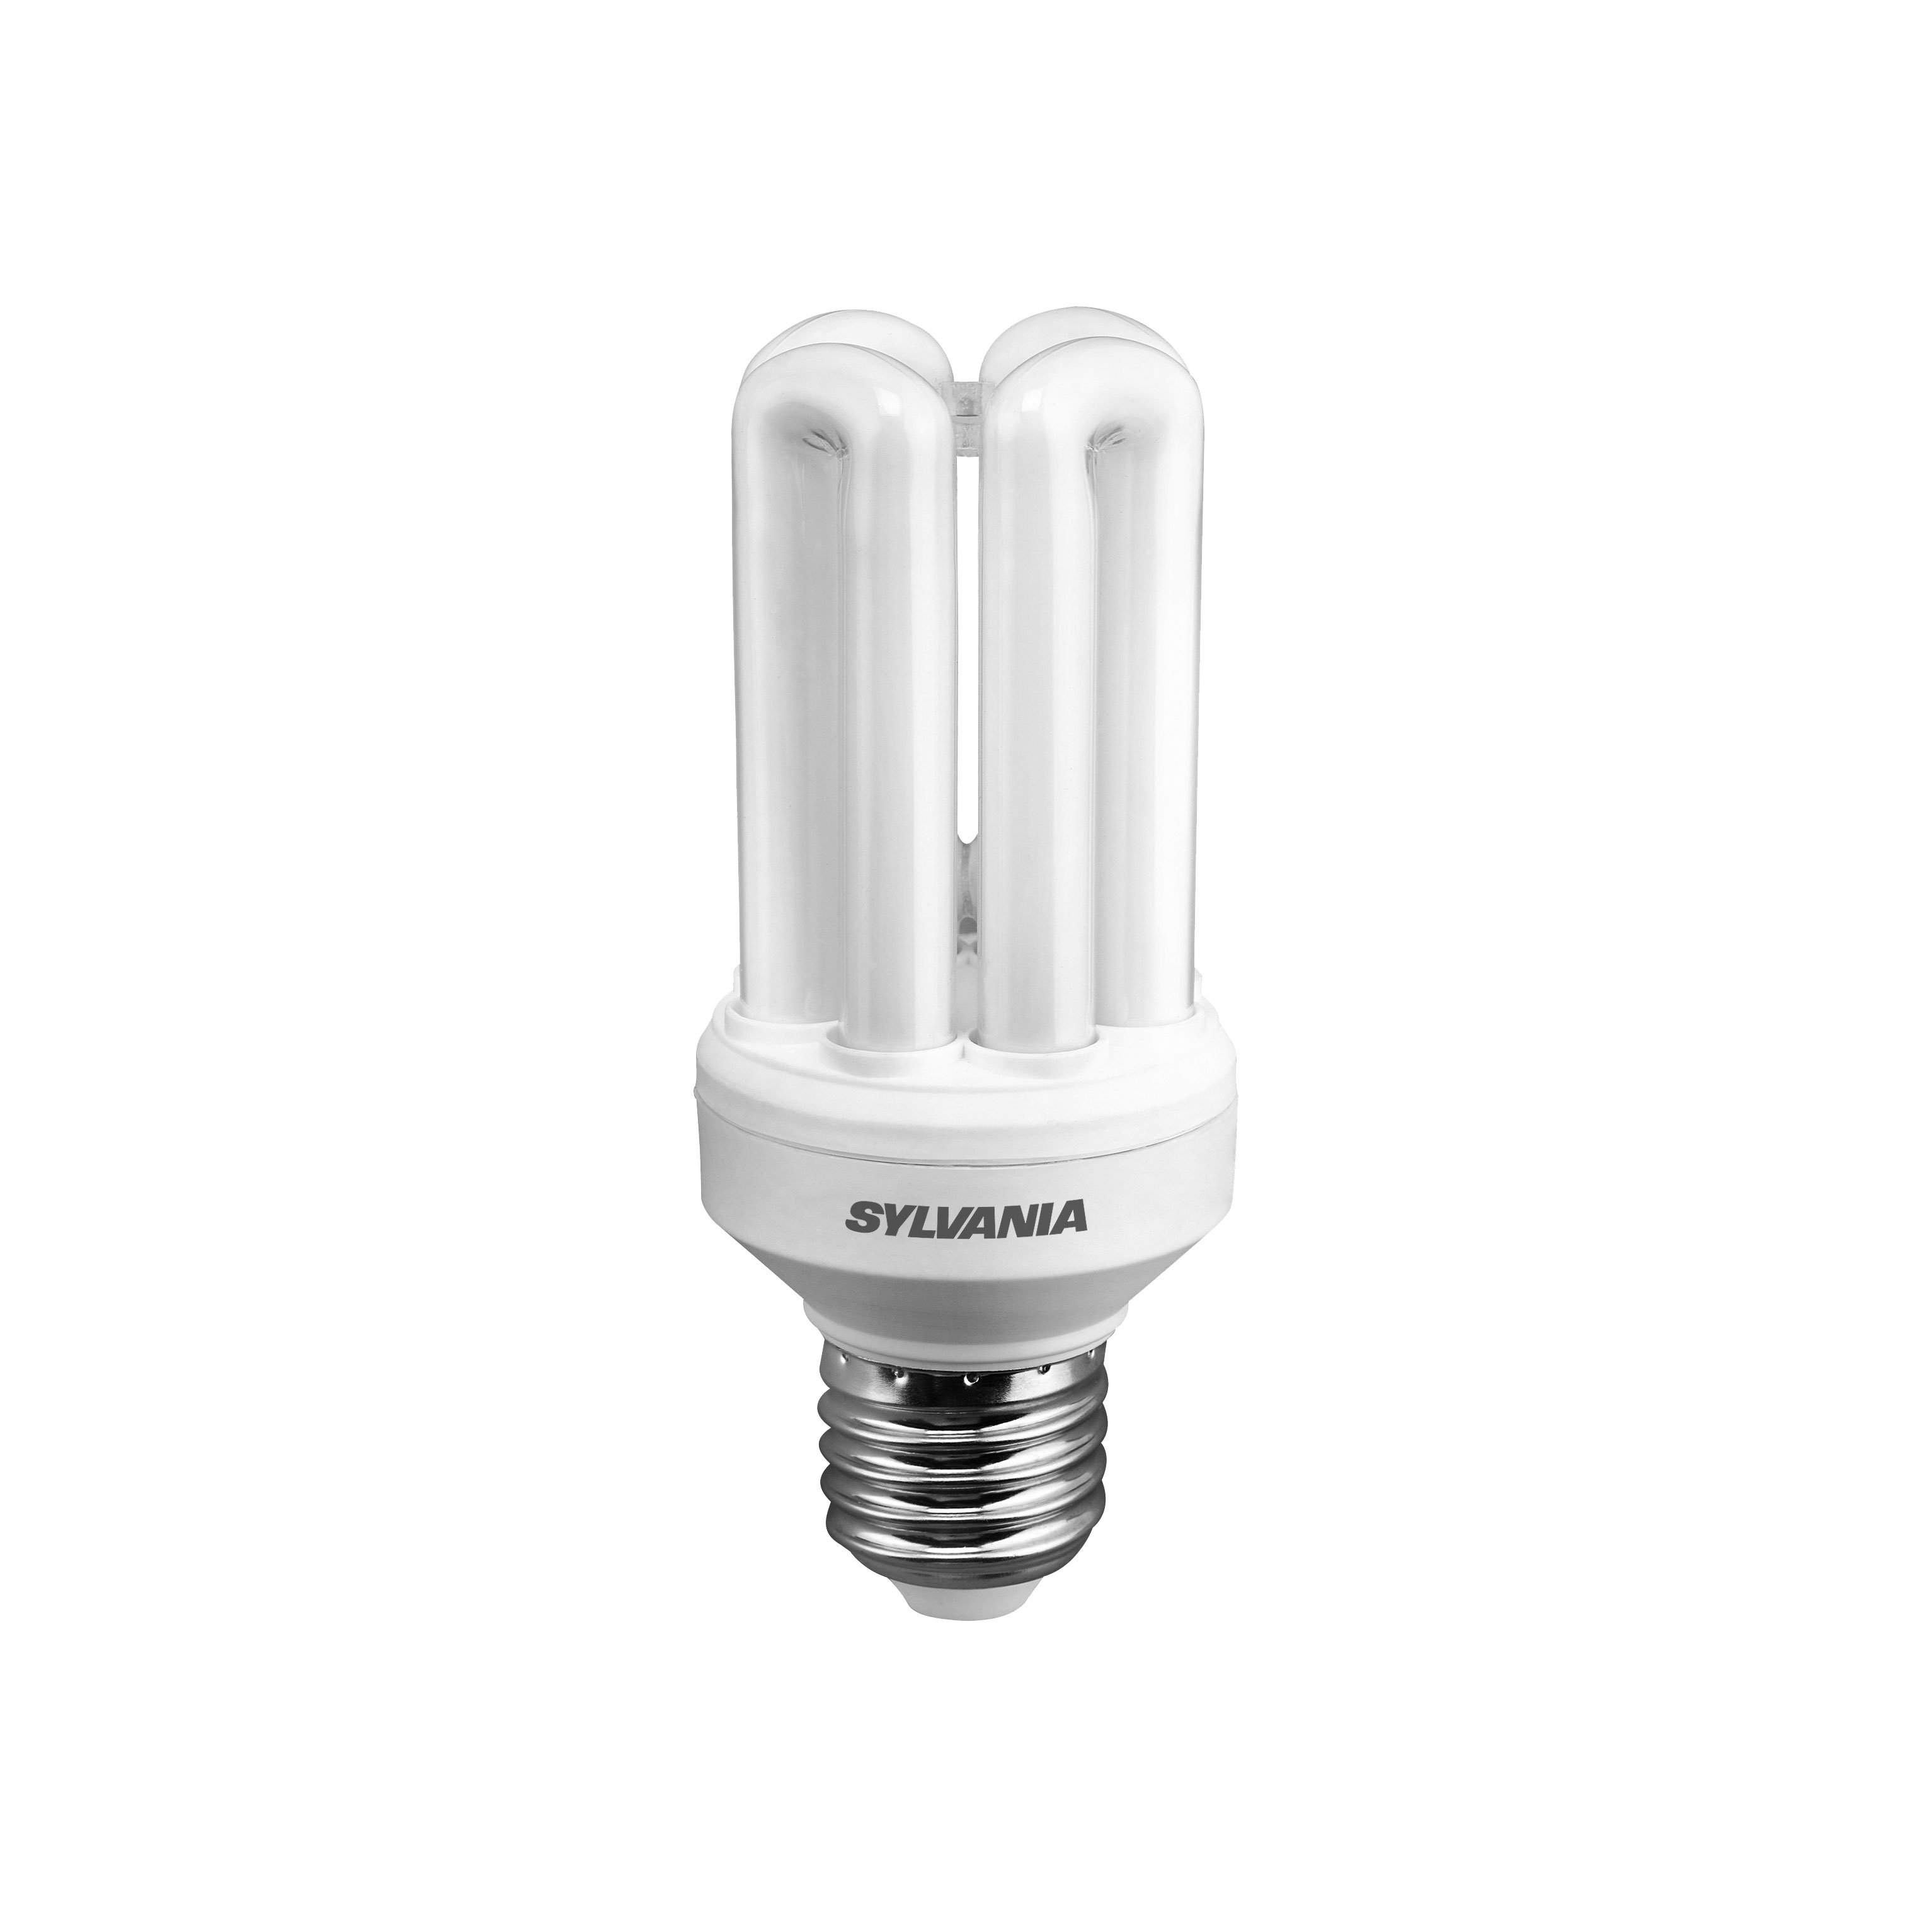 CFL ES 15W 827 10K MINI LYNX FAST START